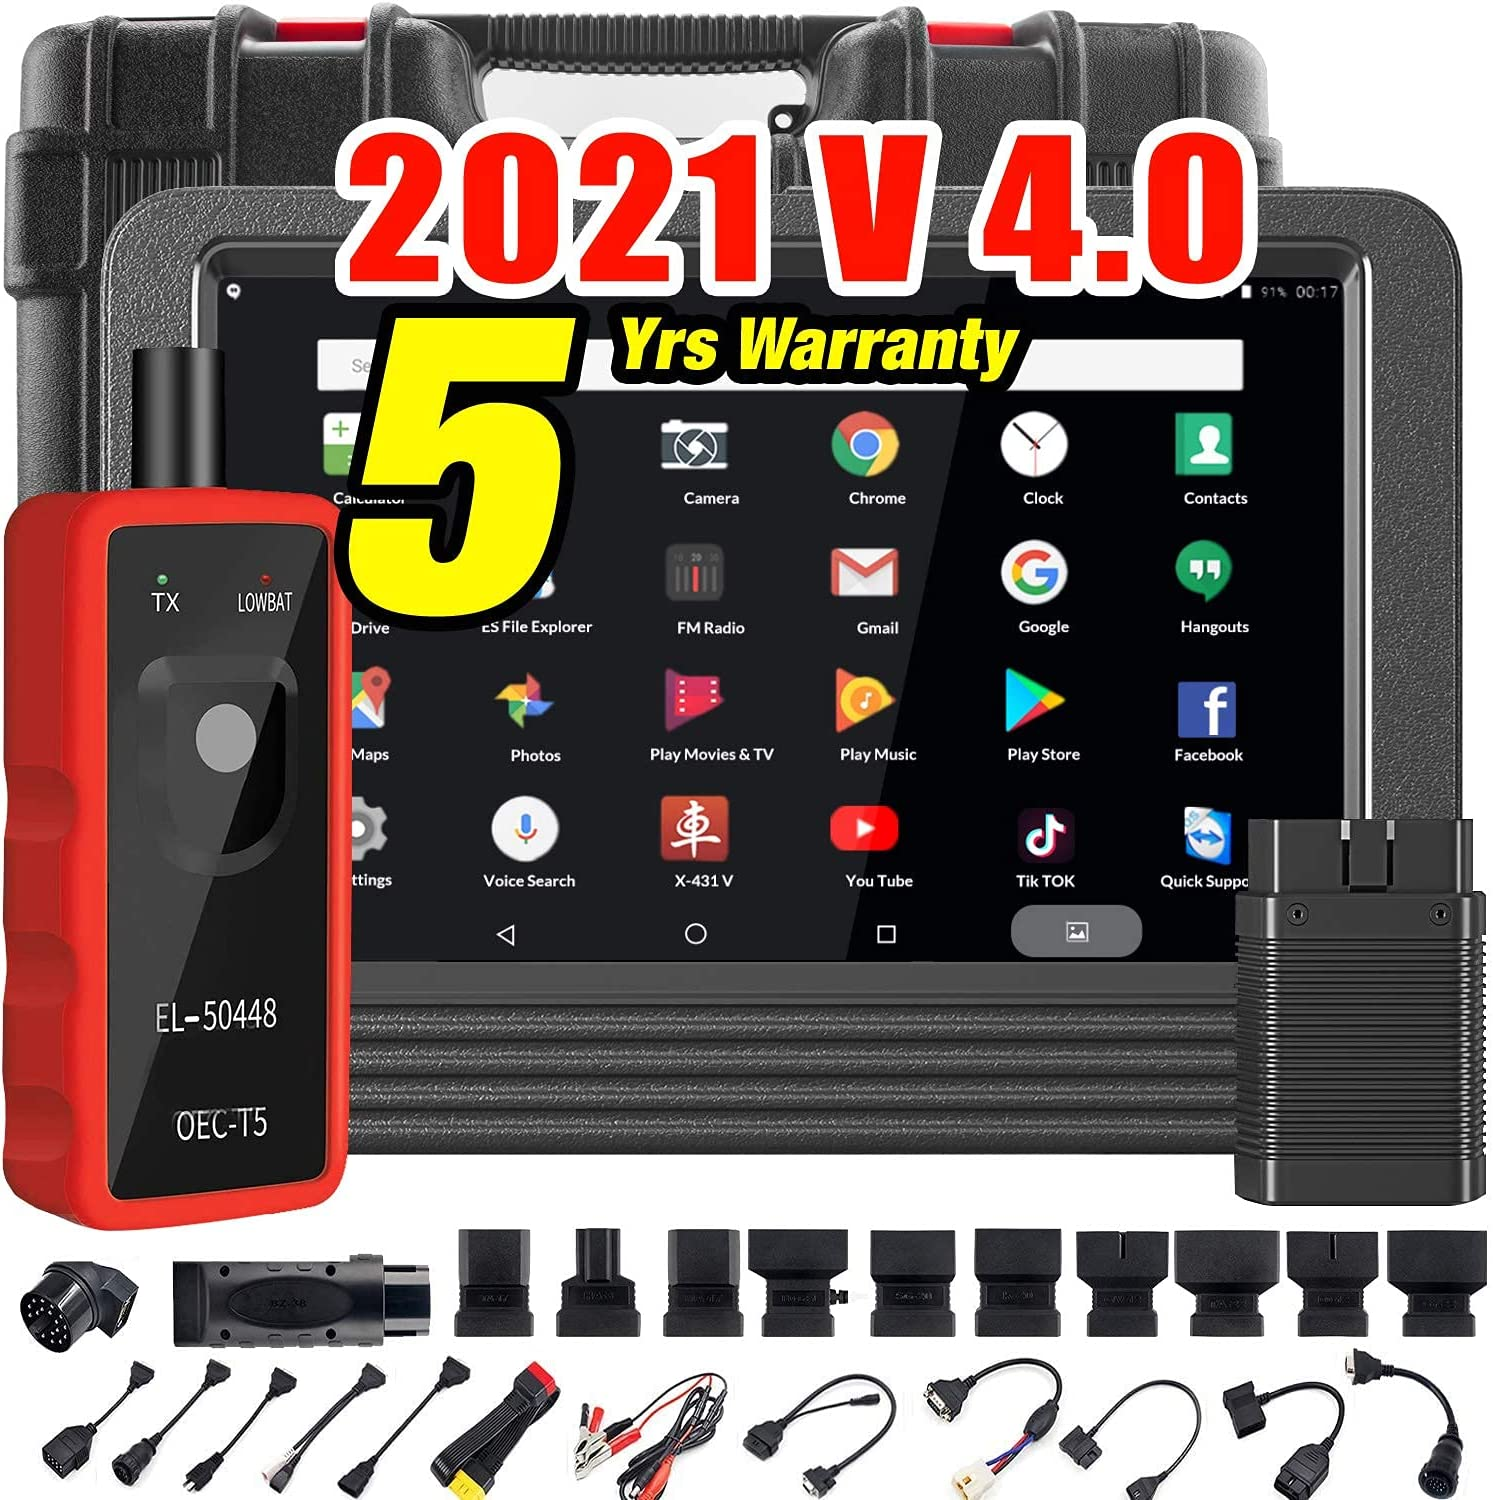 Launch X431 V PRO (2021 V 4.0) Bi-Directional Scanner Full Systems Diagnostic Scan Tool 31+ Reset Functions Key Programming, Variant Coding, AutoAuth for FCA SGW, 2 Years Update-EL-50448 TPMS Tool